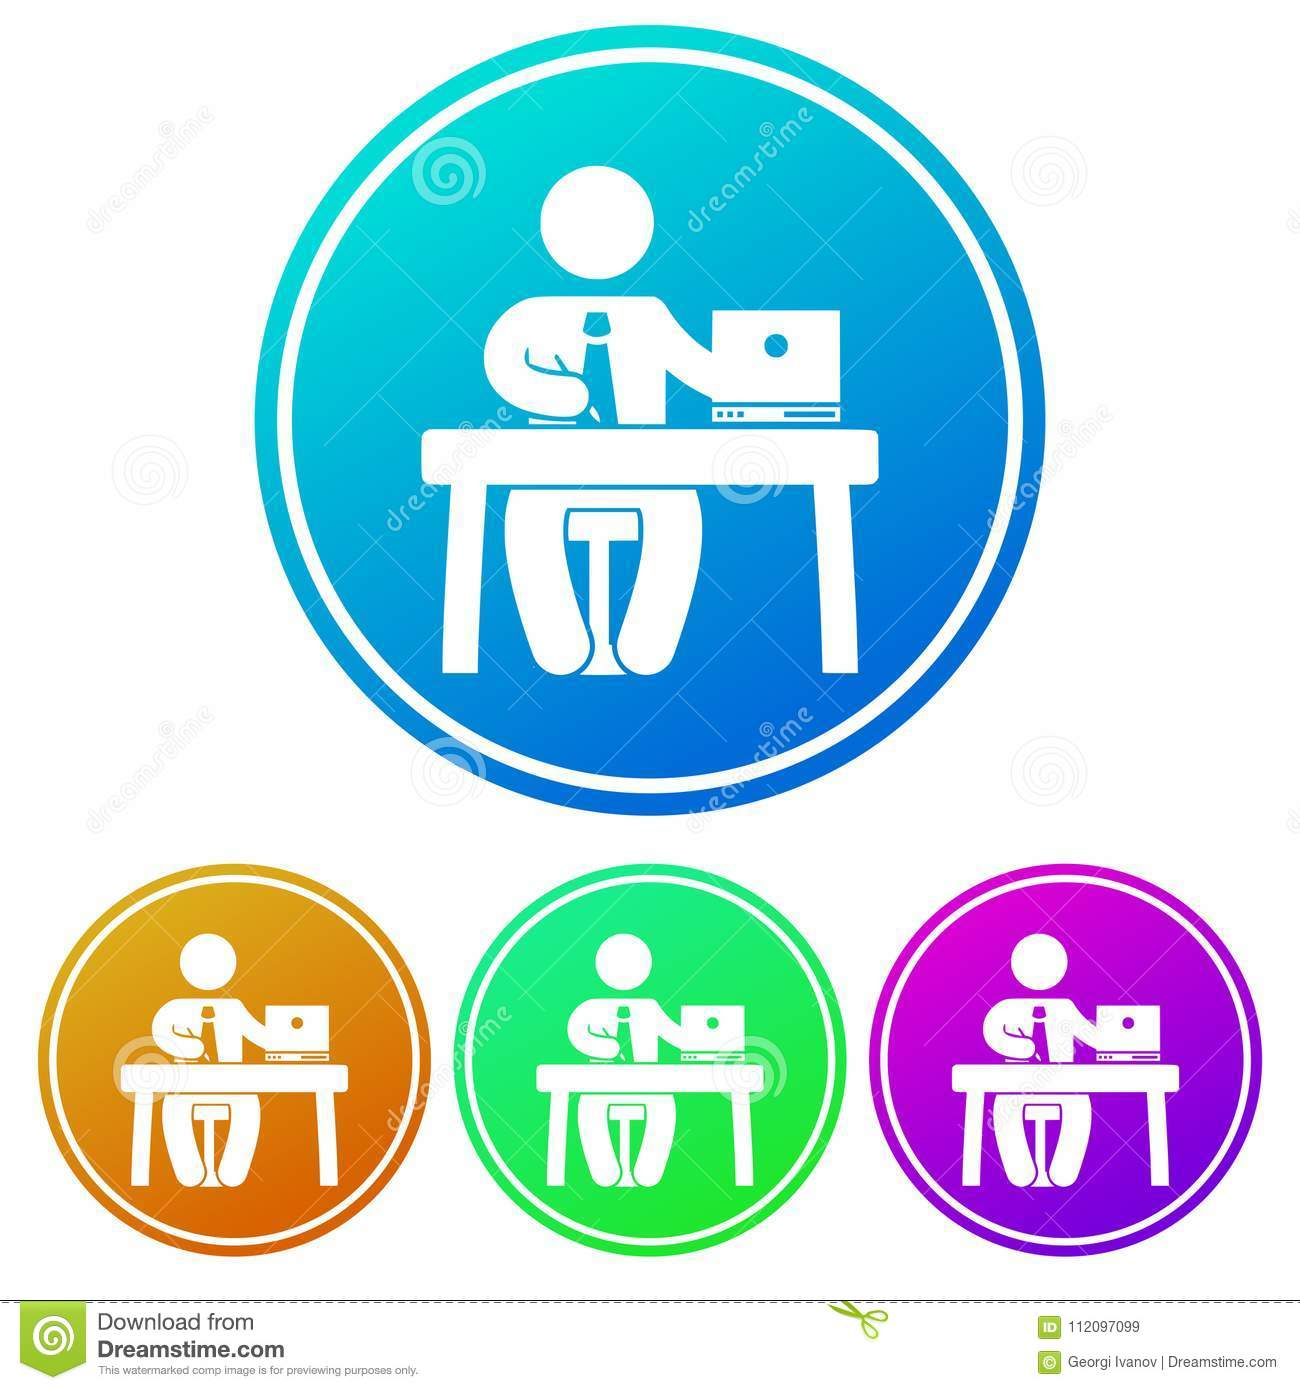 Circular Gradient Icon Of A Man Working At A Desk White Silhouette